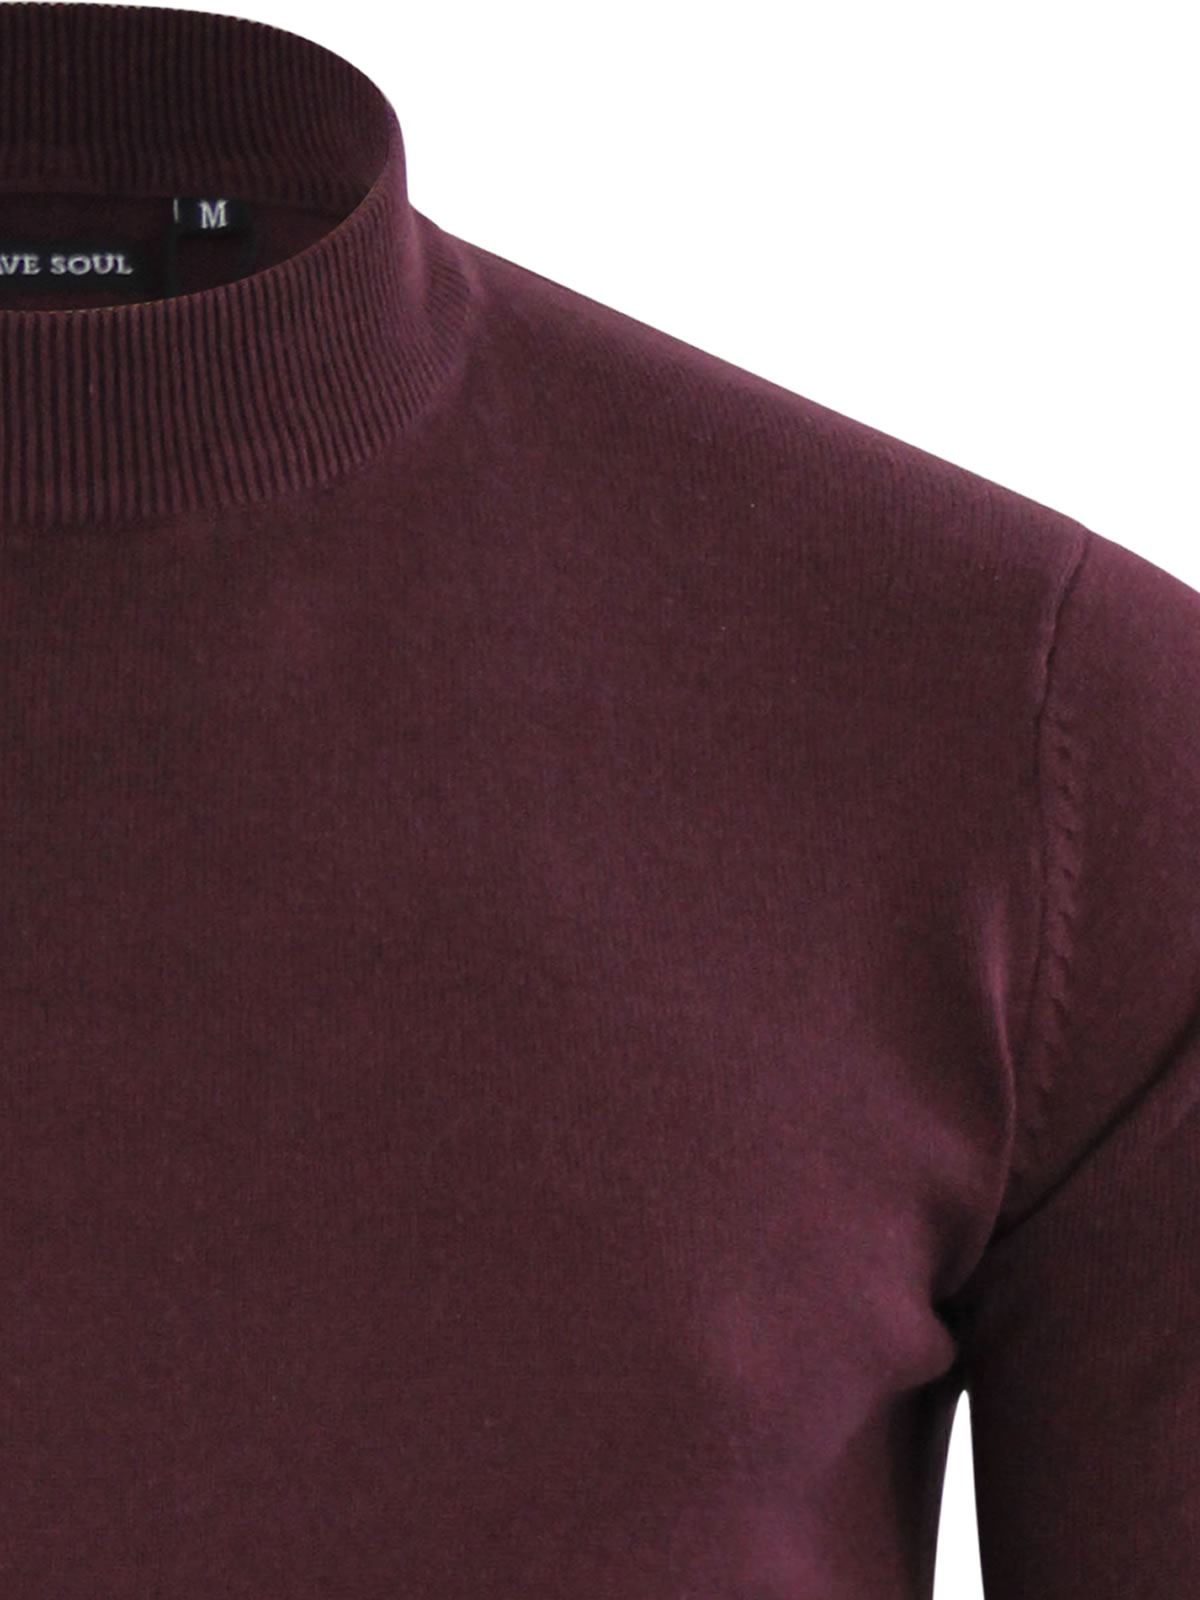 Mens-Jumper-Brave-Soul-Turtle-Neck-Cotton-Pull-Over-Sweater thumbnail 16